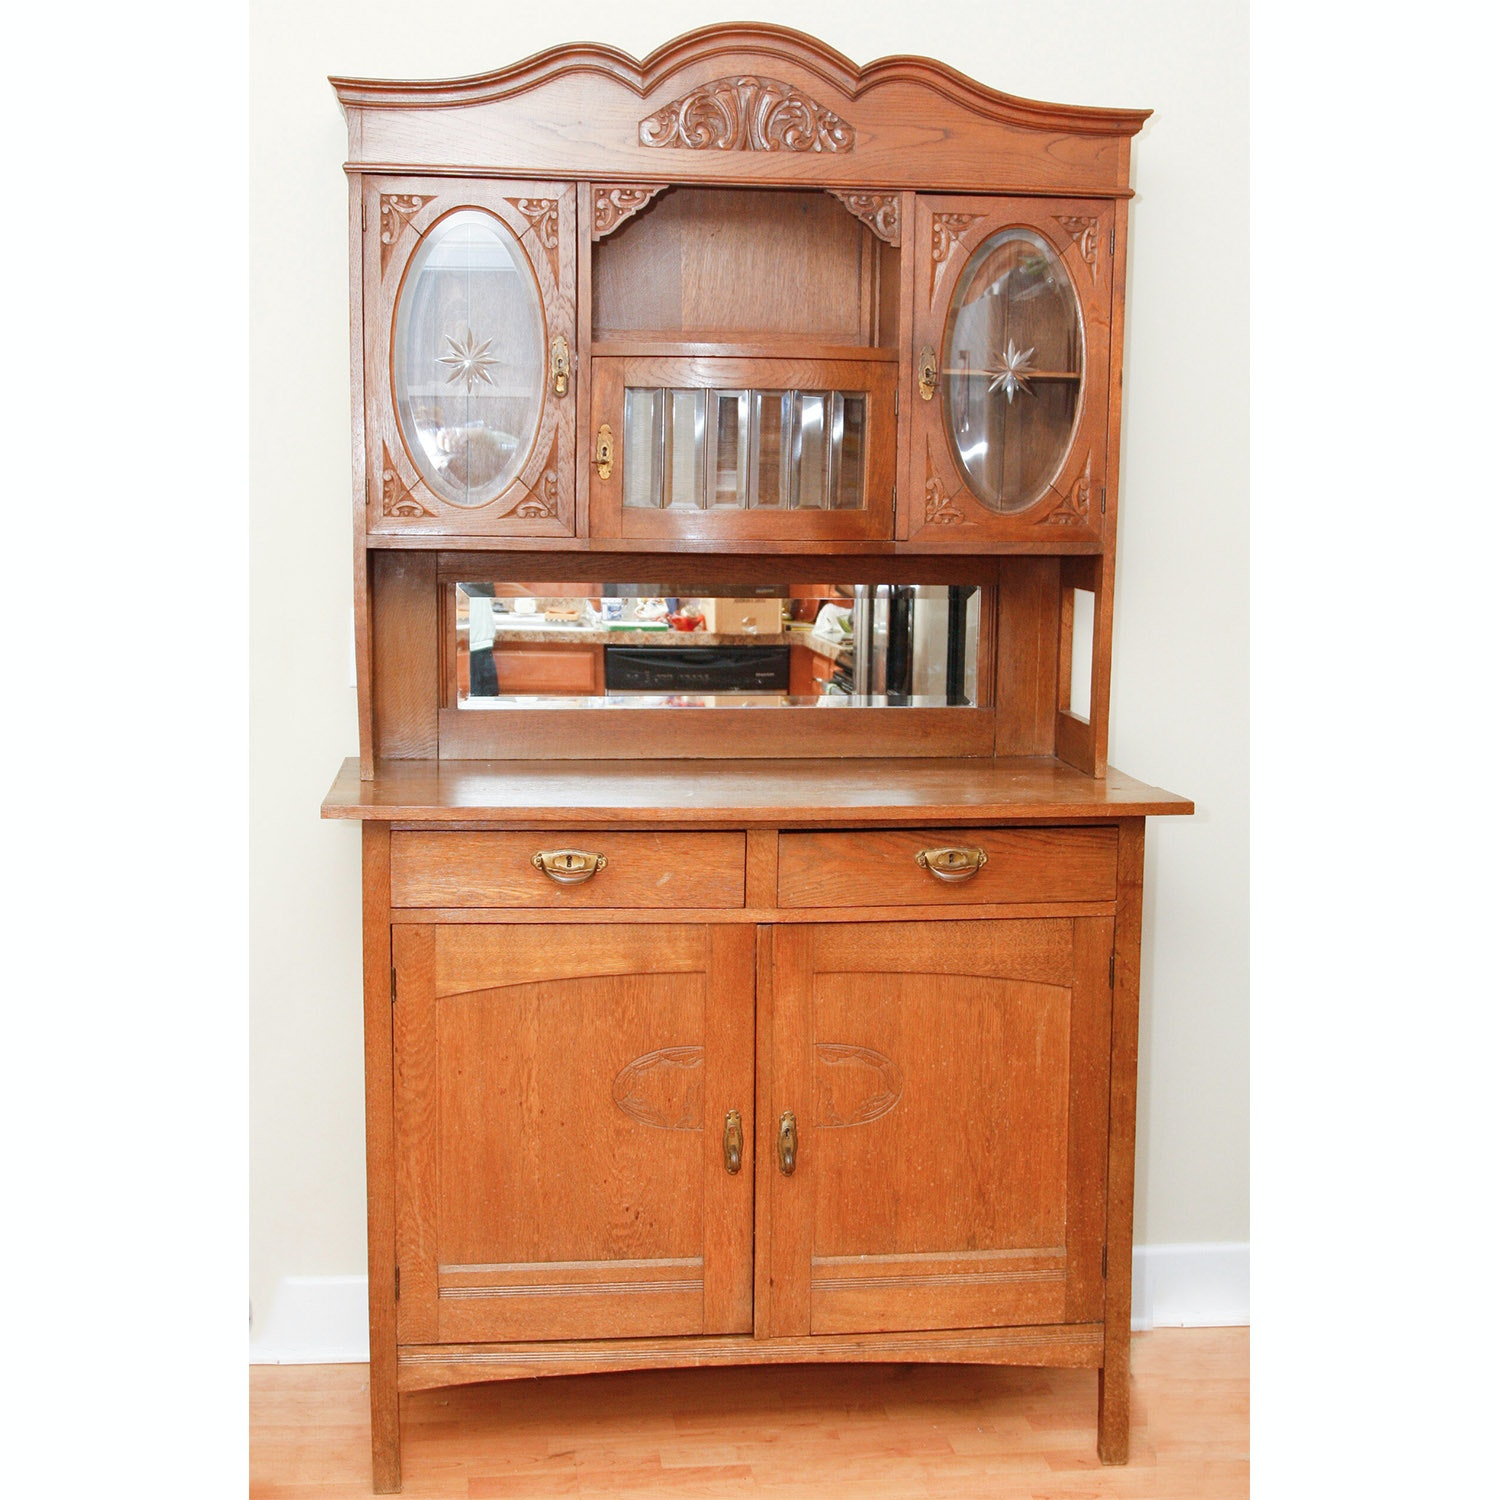 Victorian Oak Sideboard with Hutch